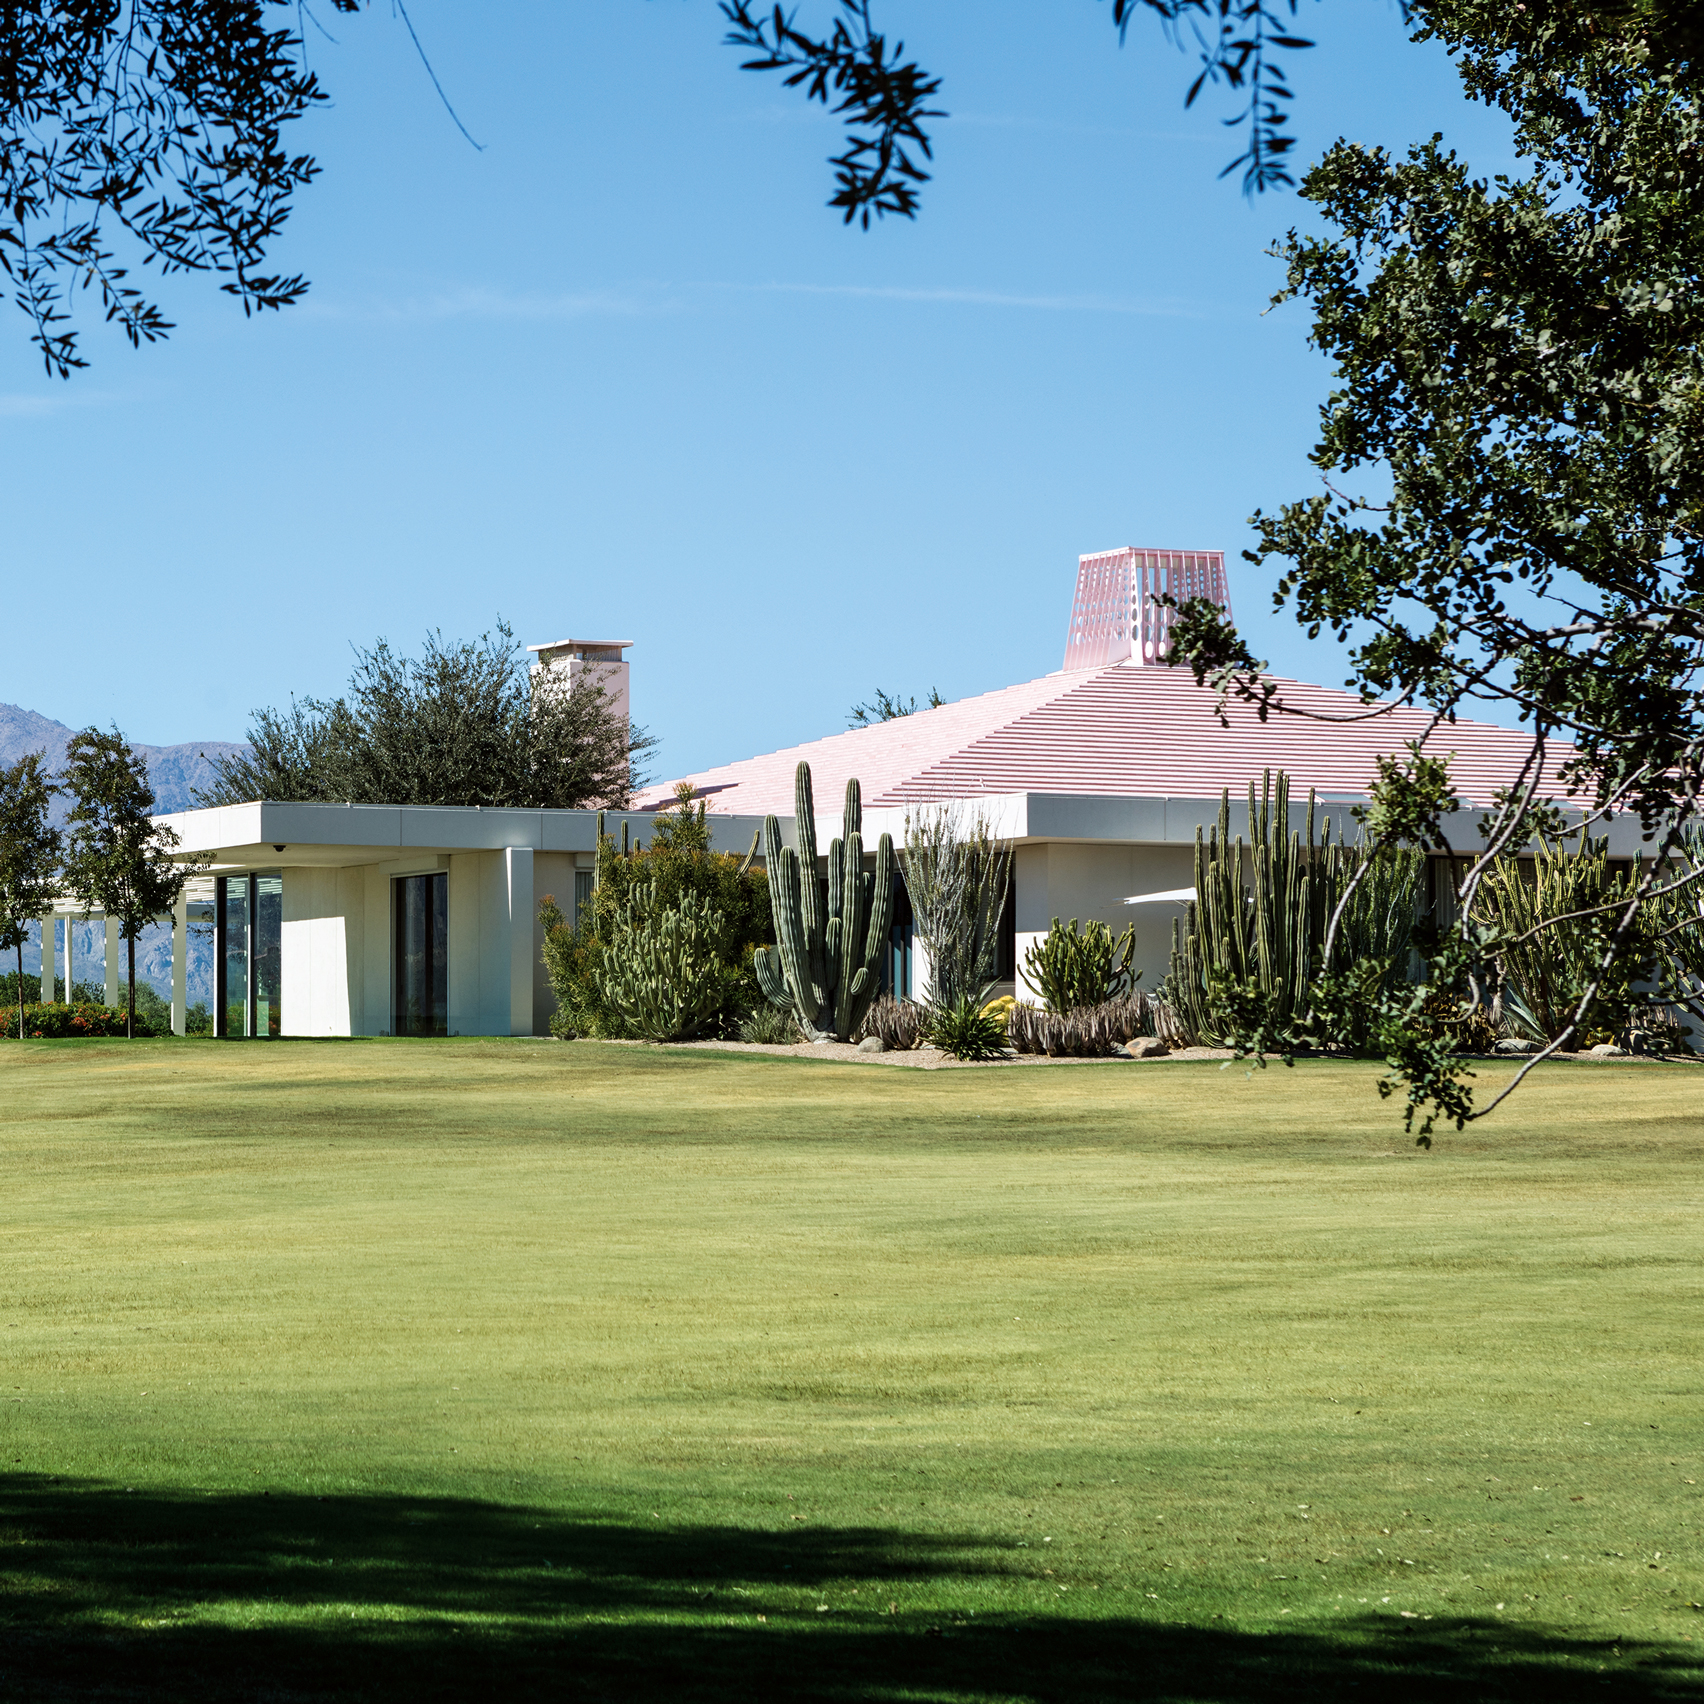 sunnylands-a-quincy-jones-palm-springs-1966-usa-roundups-architecture_sq